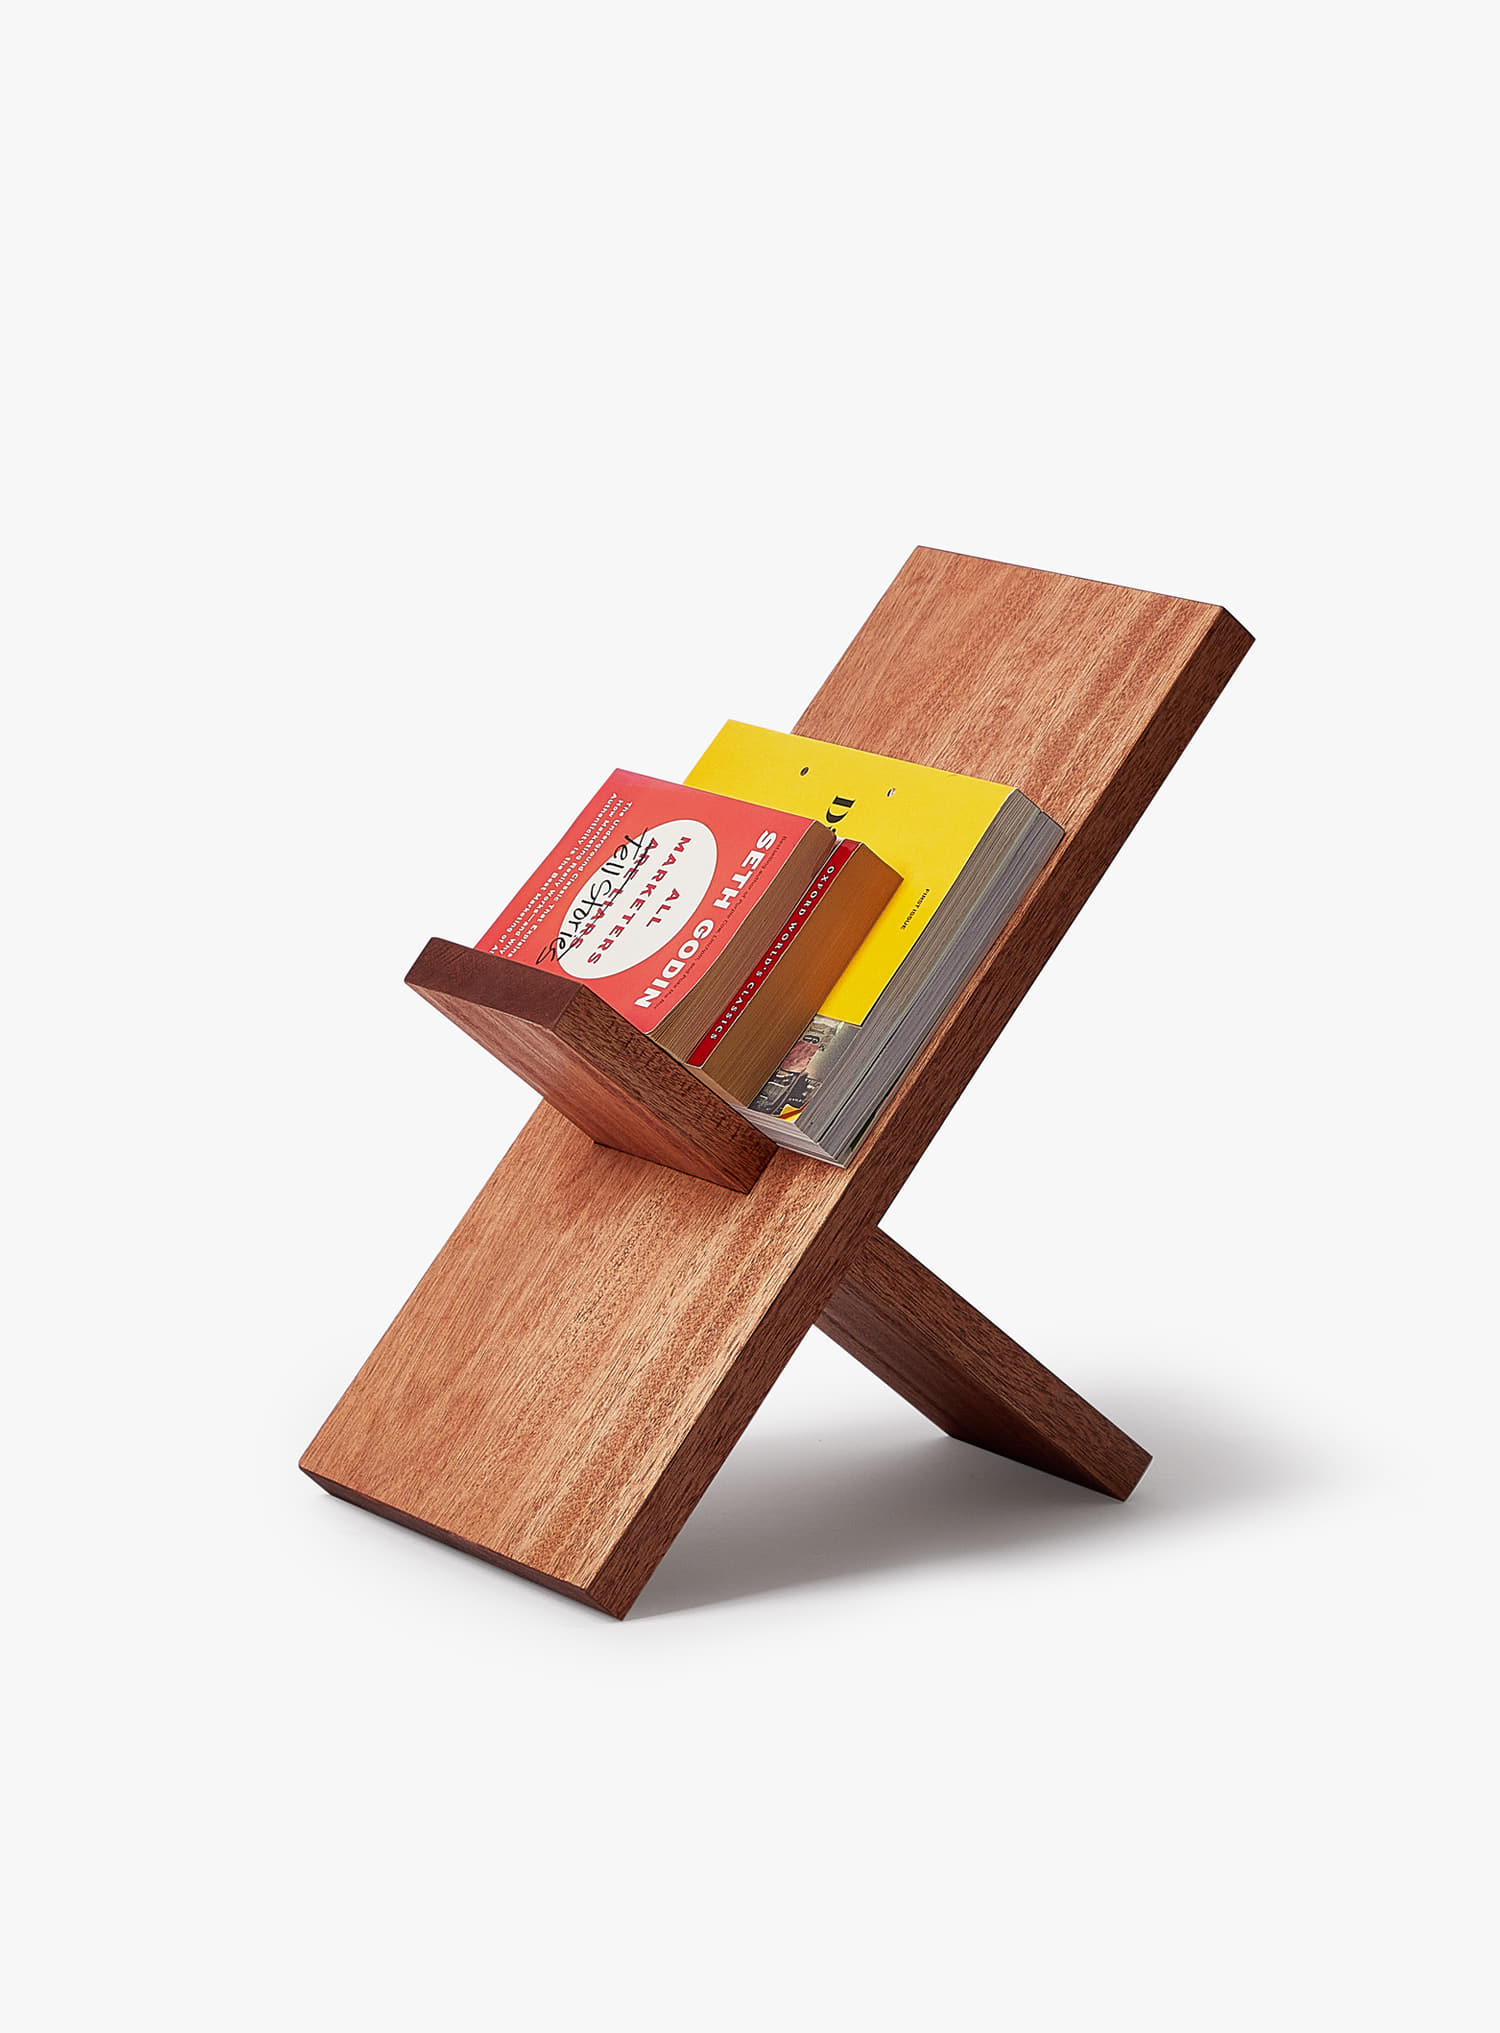 by최민석 - Book Stand